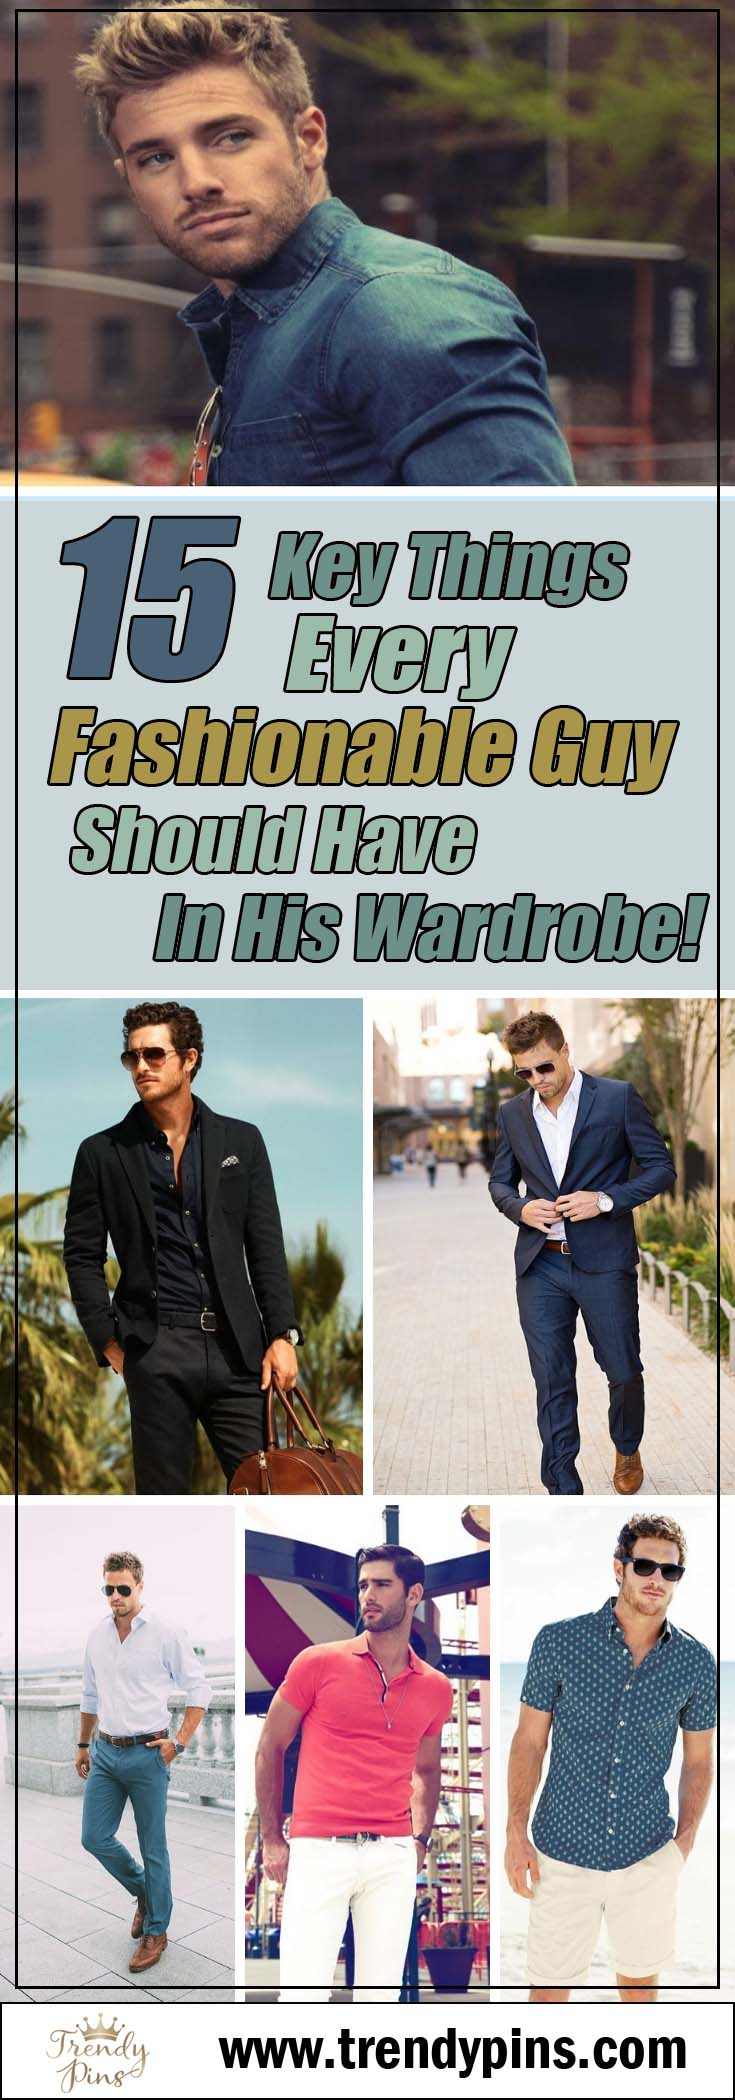 15 Key Things Every Fashionable Guy Should Have In His Wardrobe! #fashion #trendypins